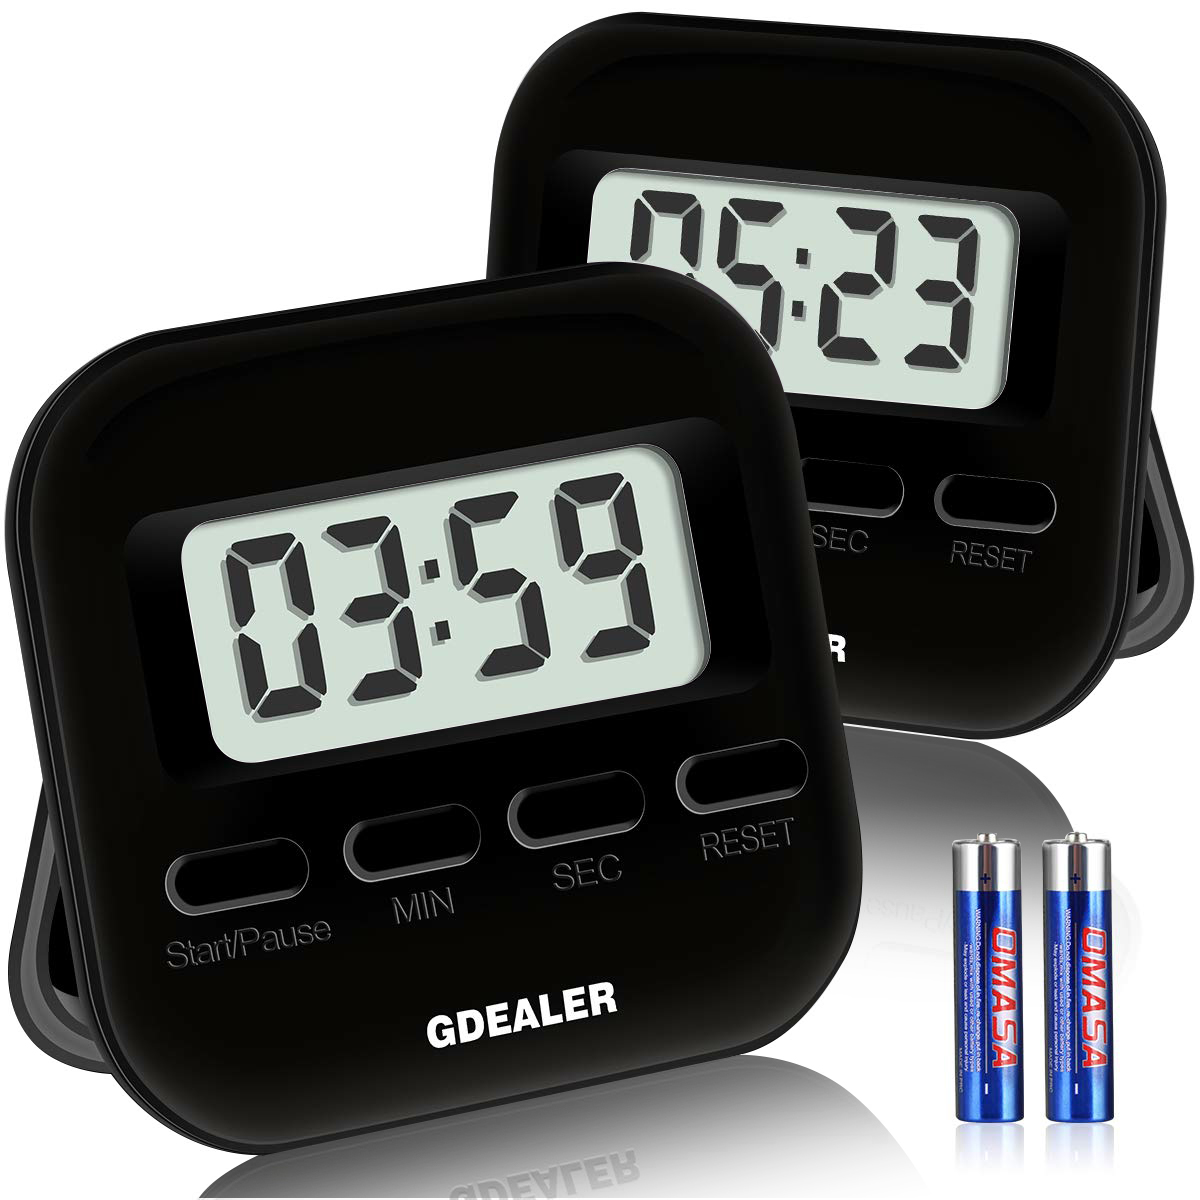 GDEALER 001 Digital Kitchen Timer 2x2.5 inch Black